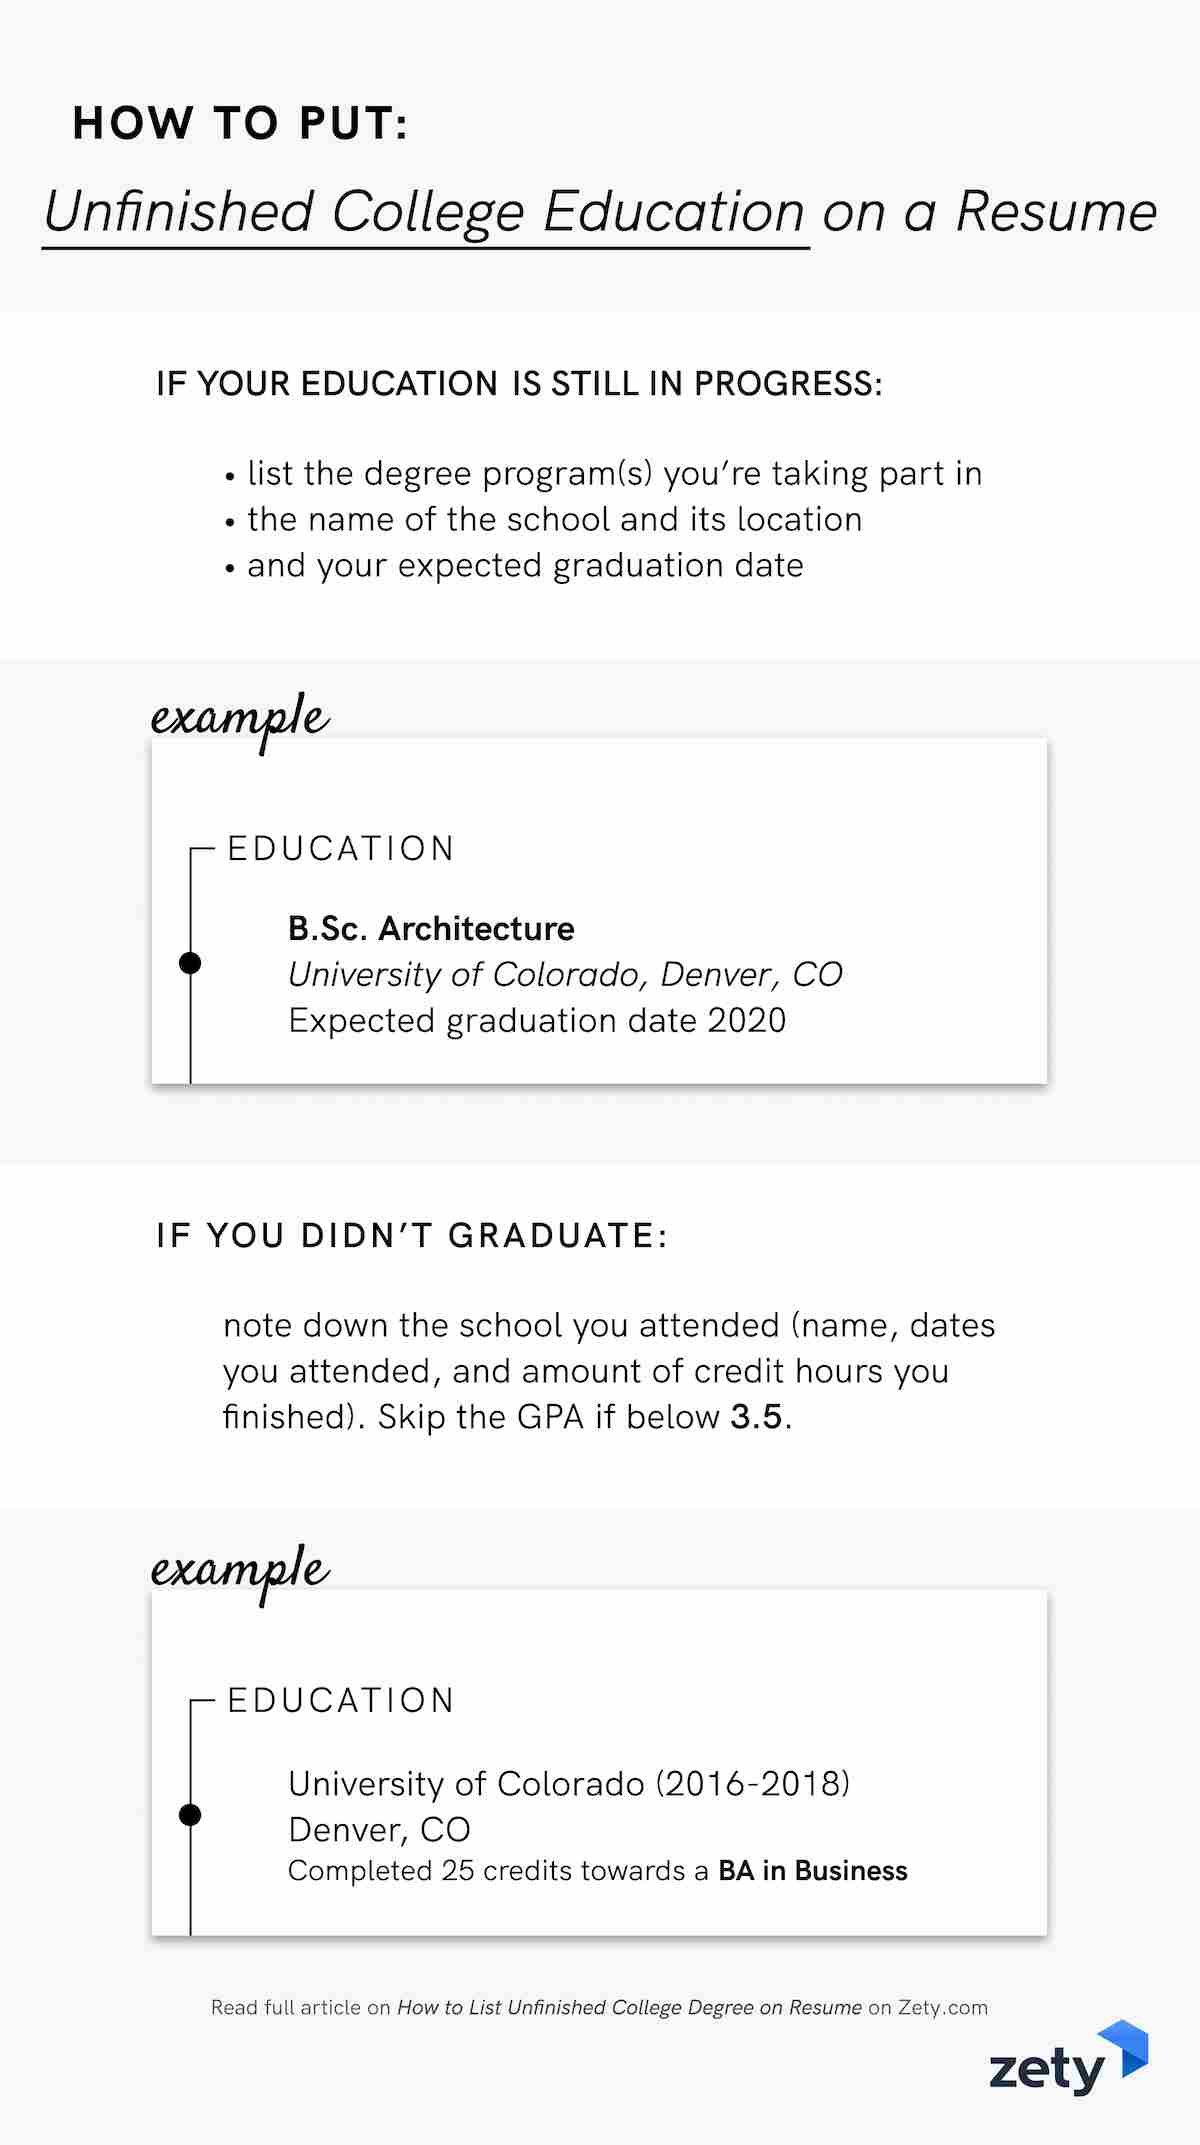 How to list unfinished college degree on resume